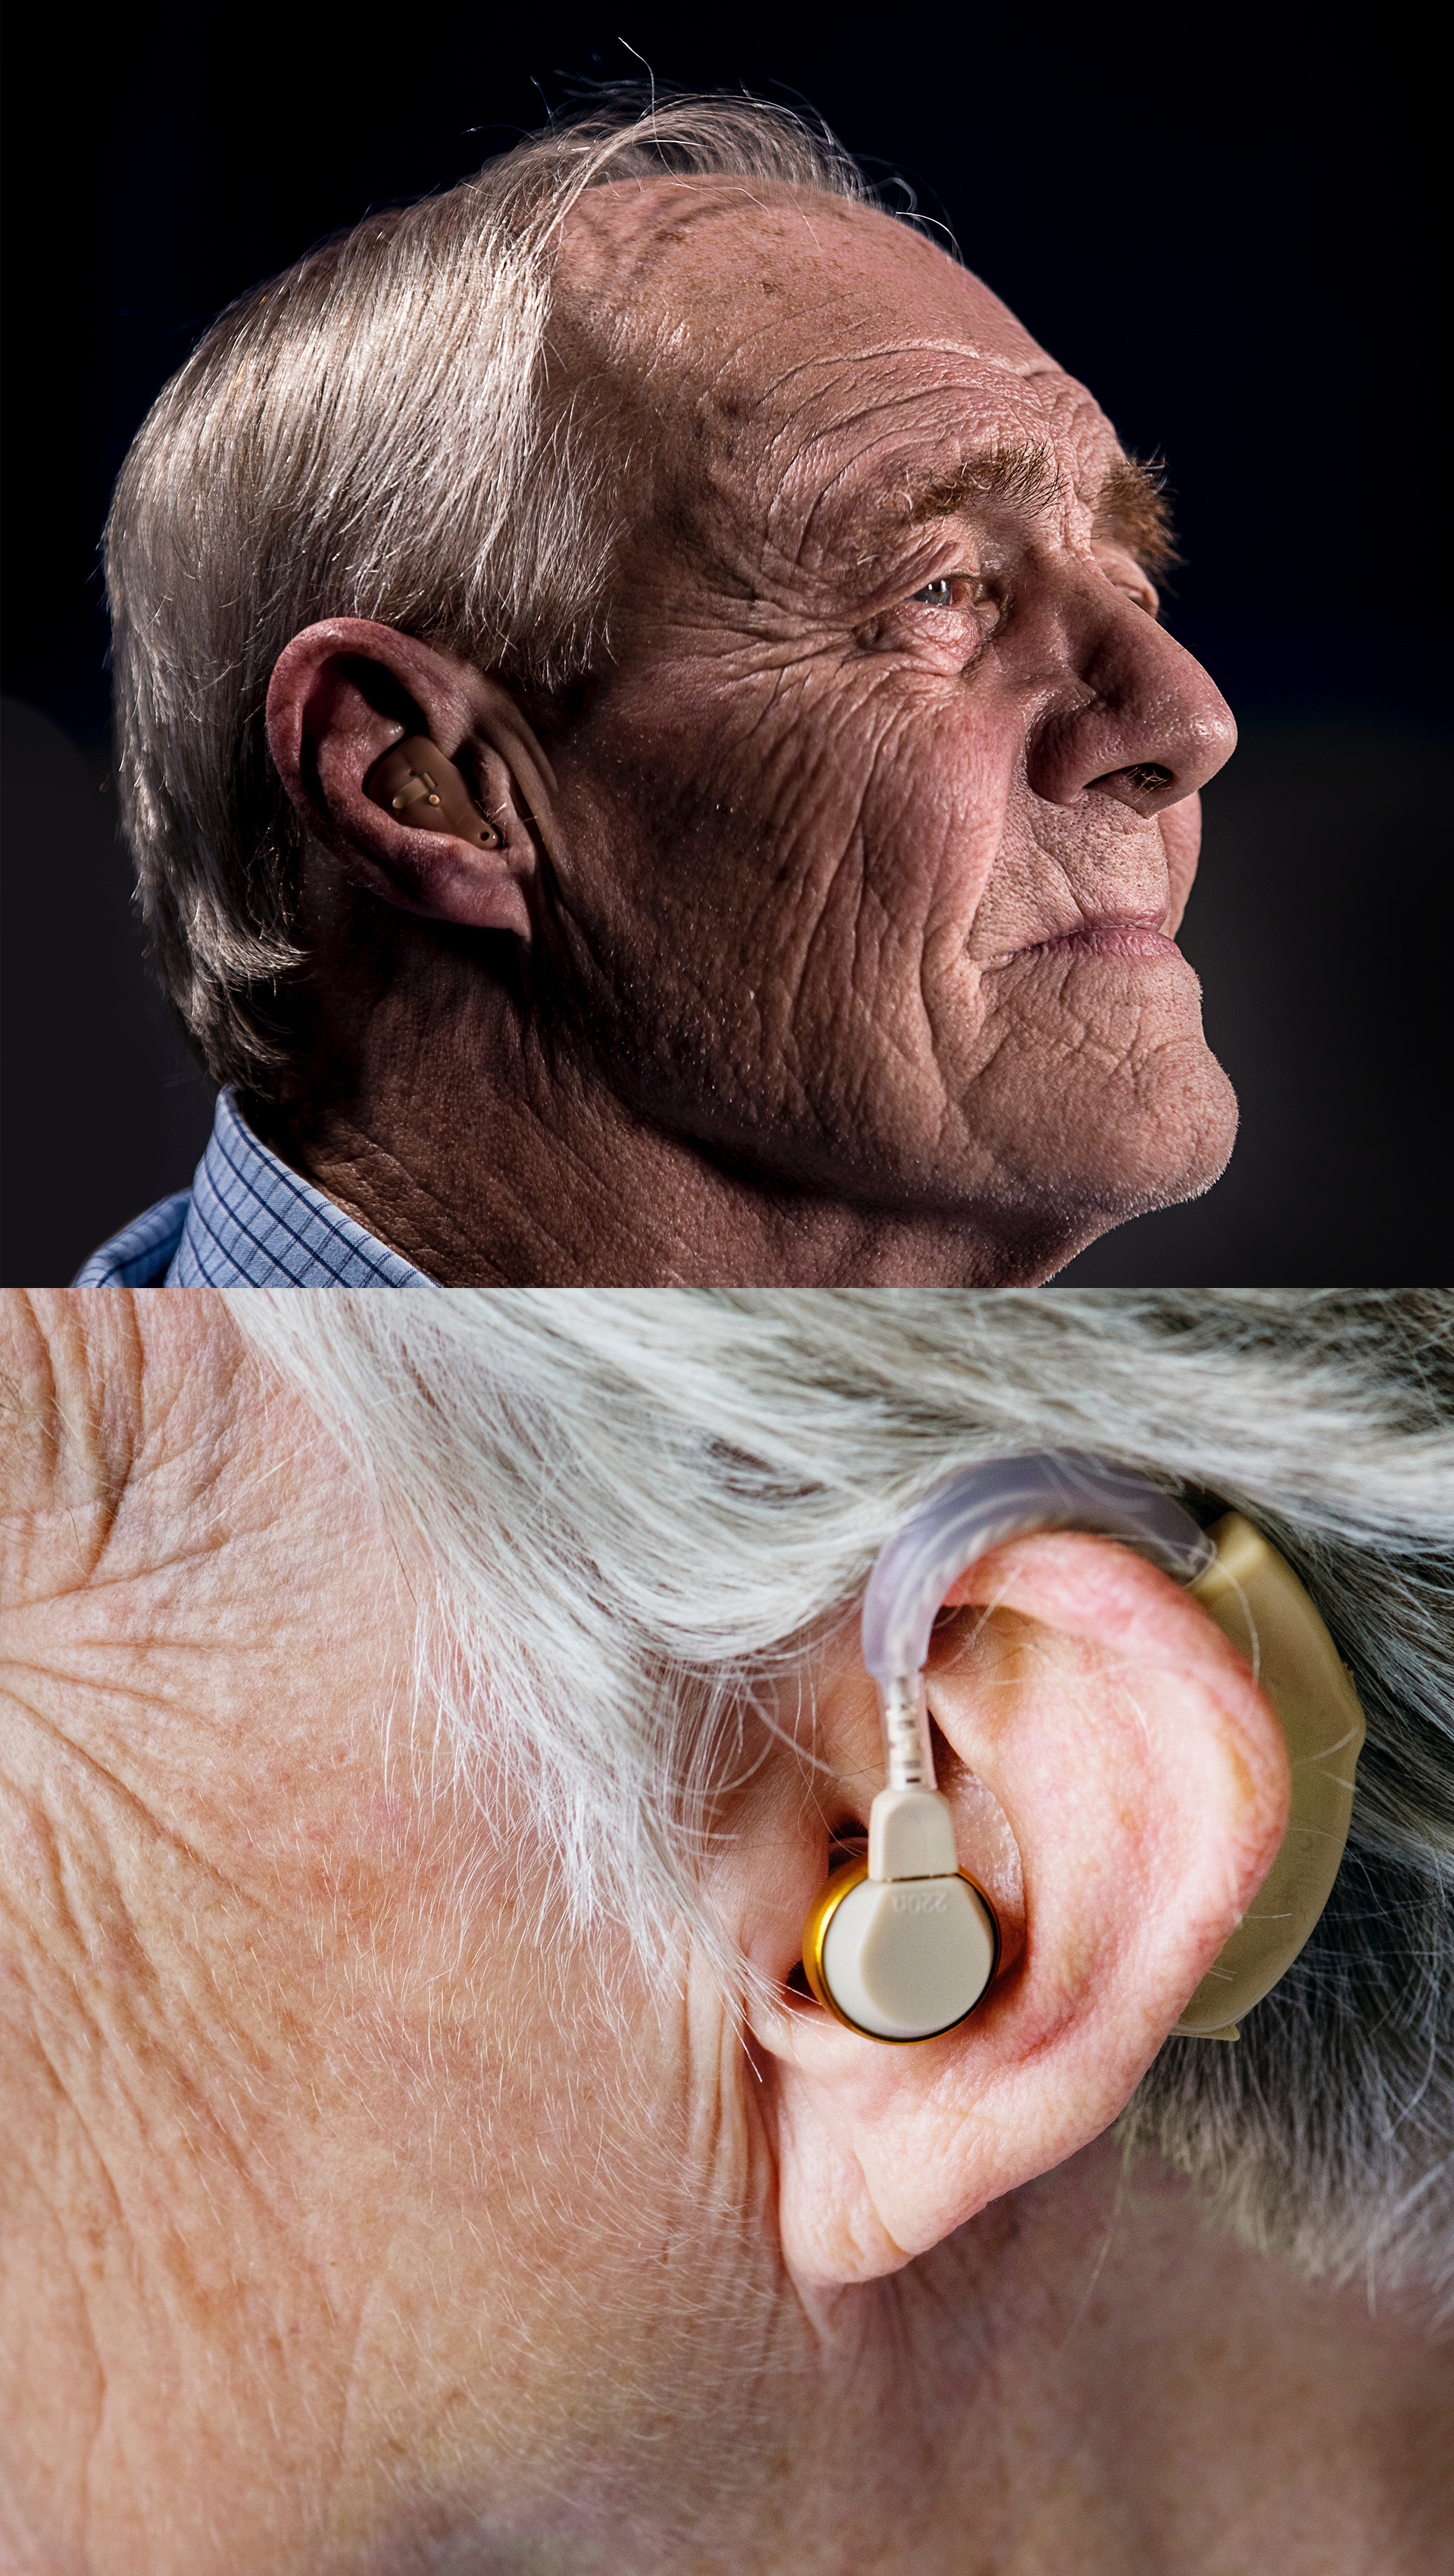 senior wearing hearing aid